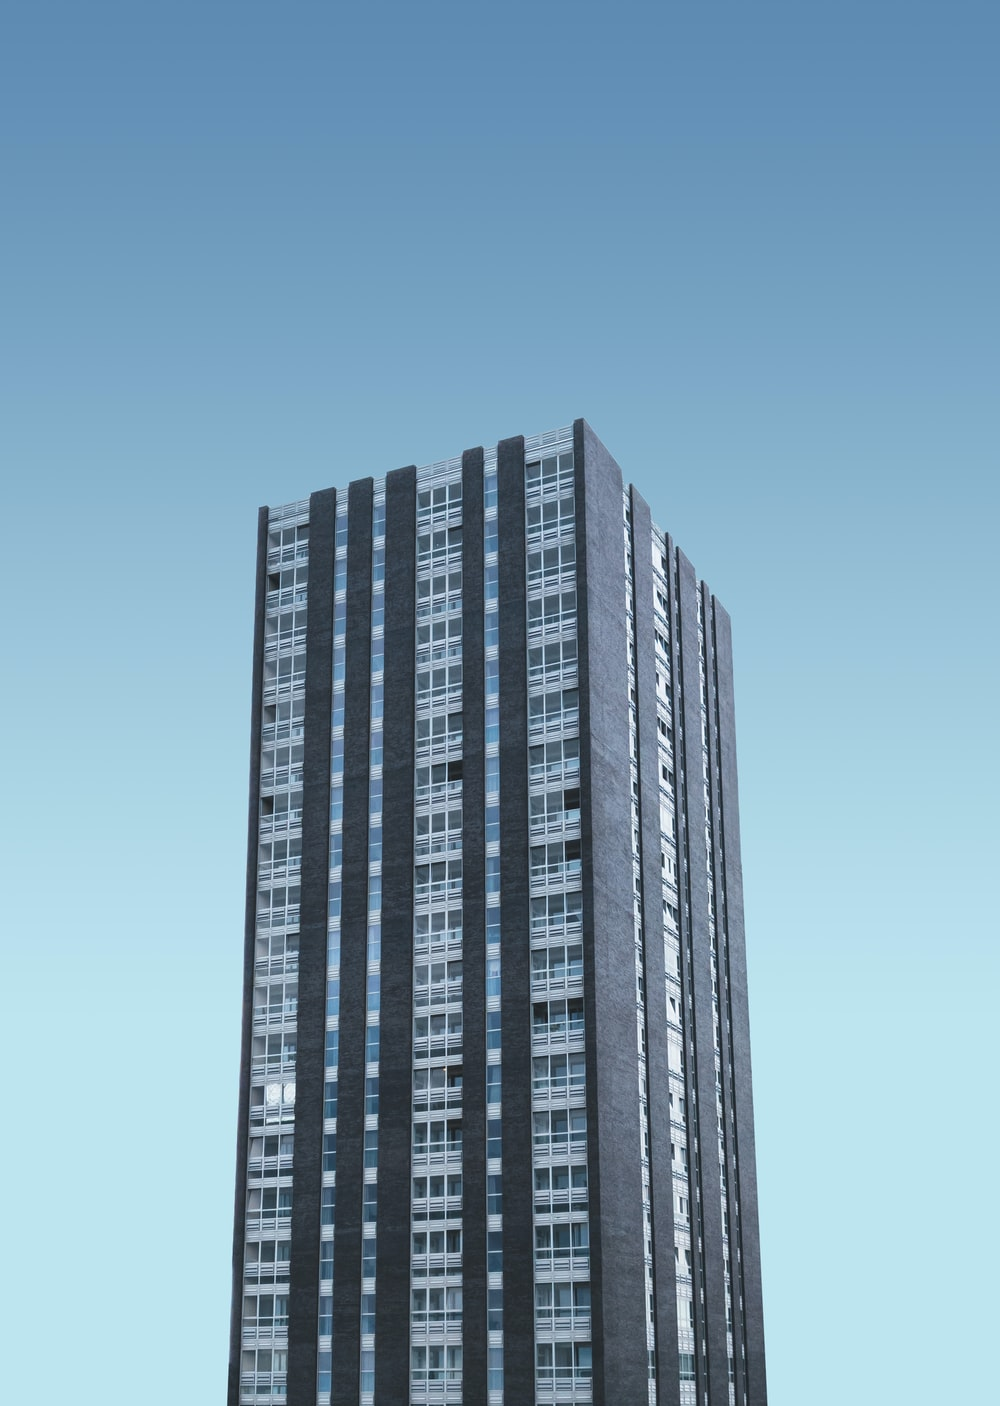 black and white high rise building